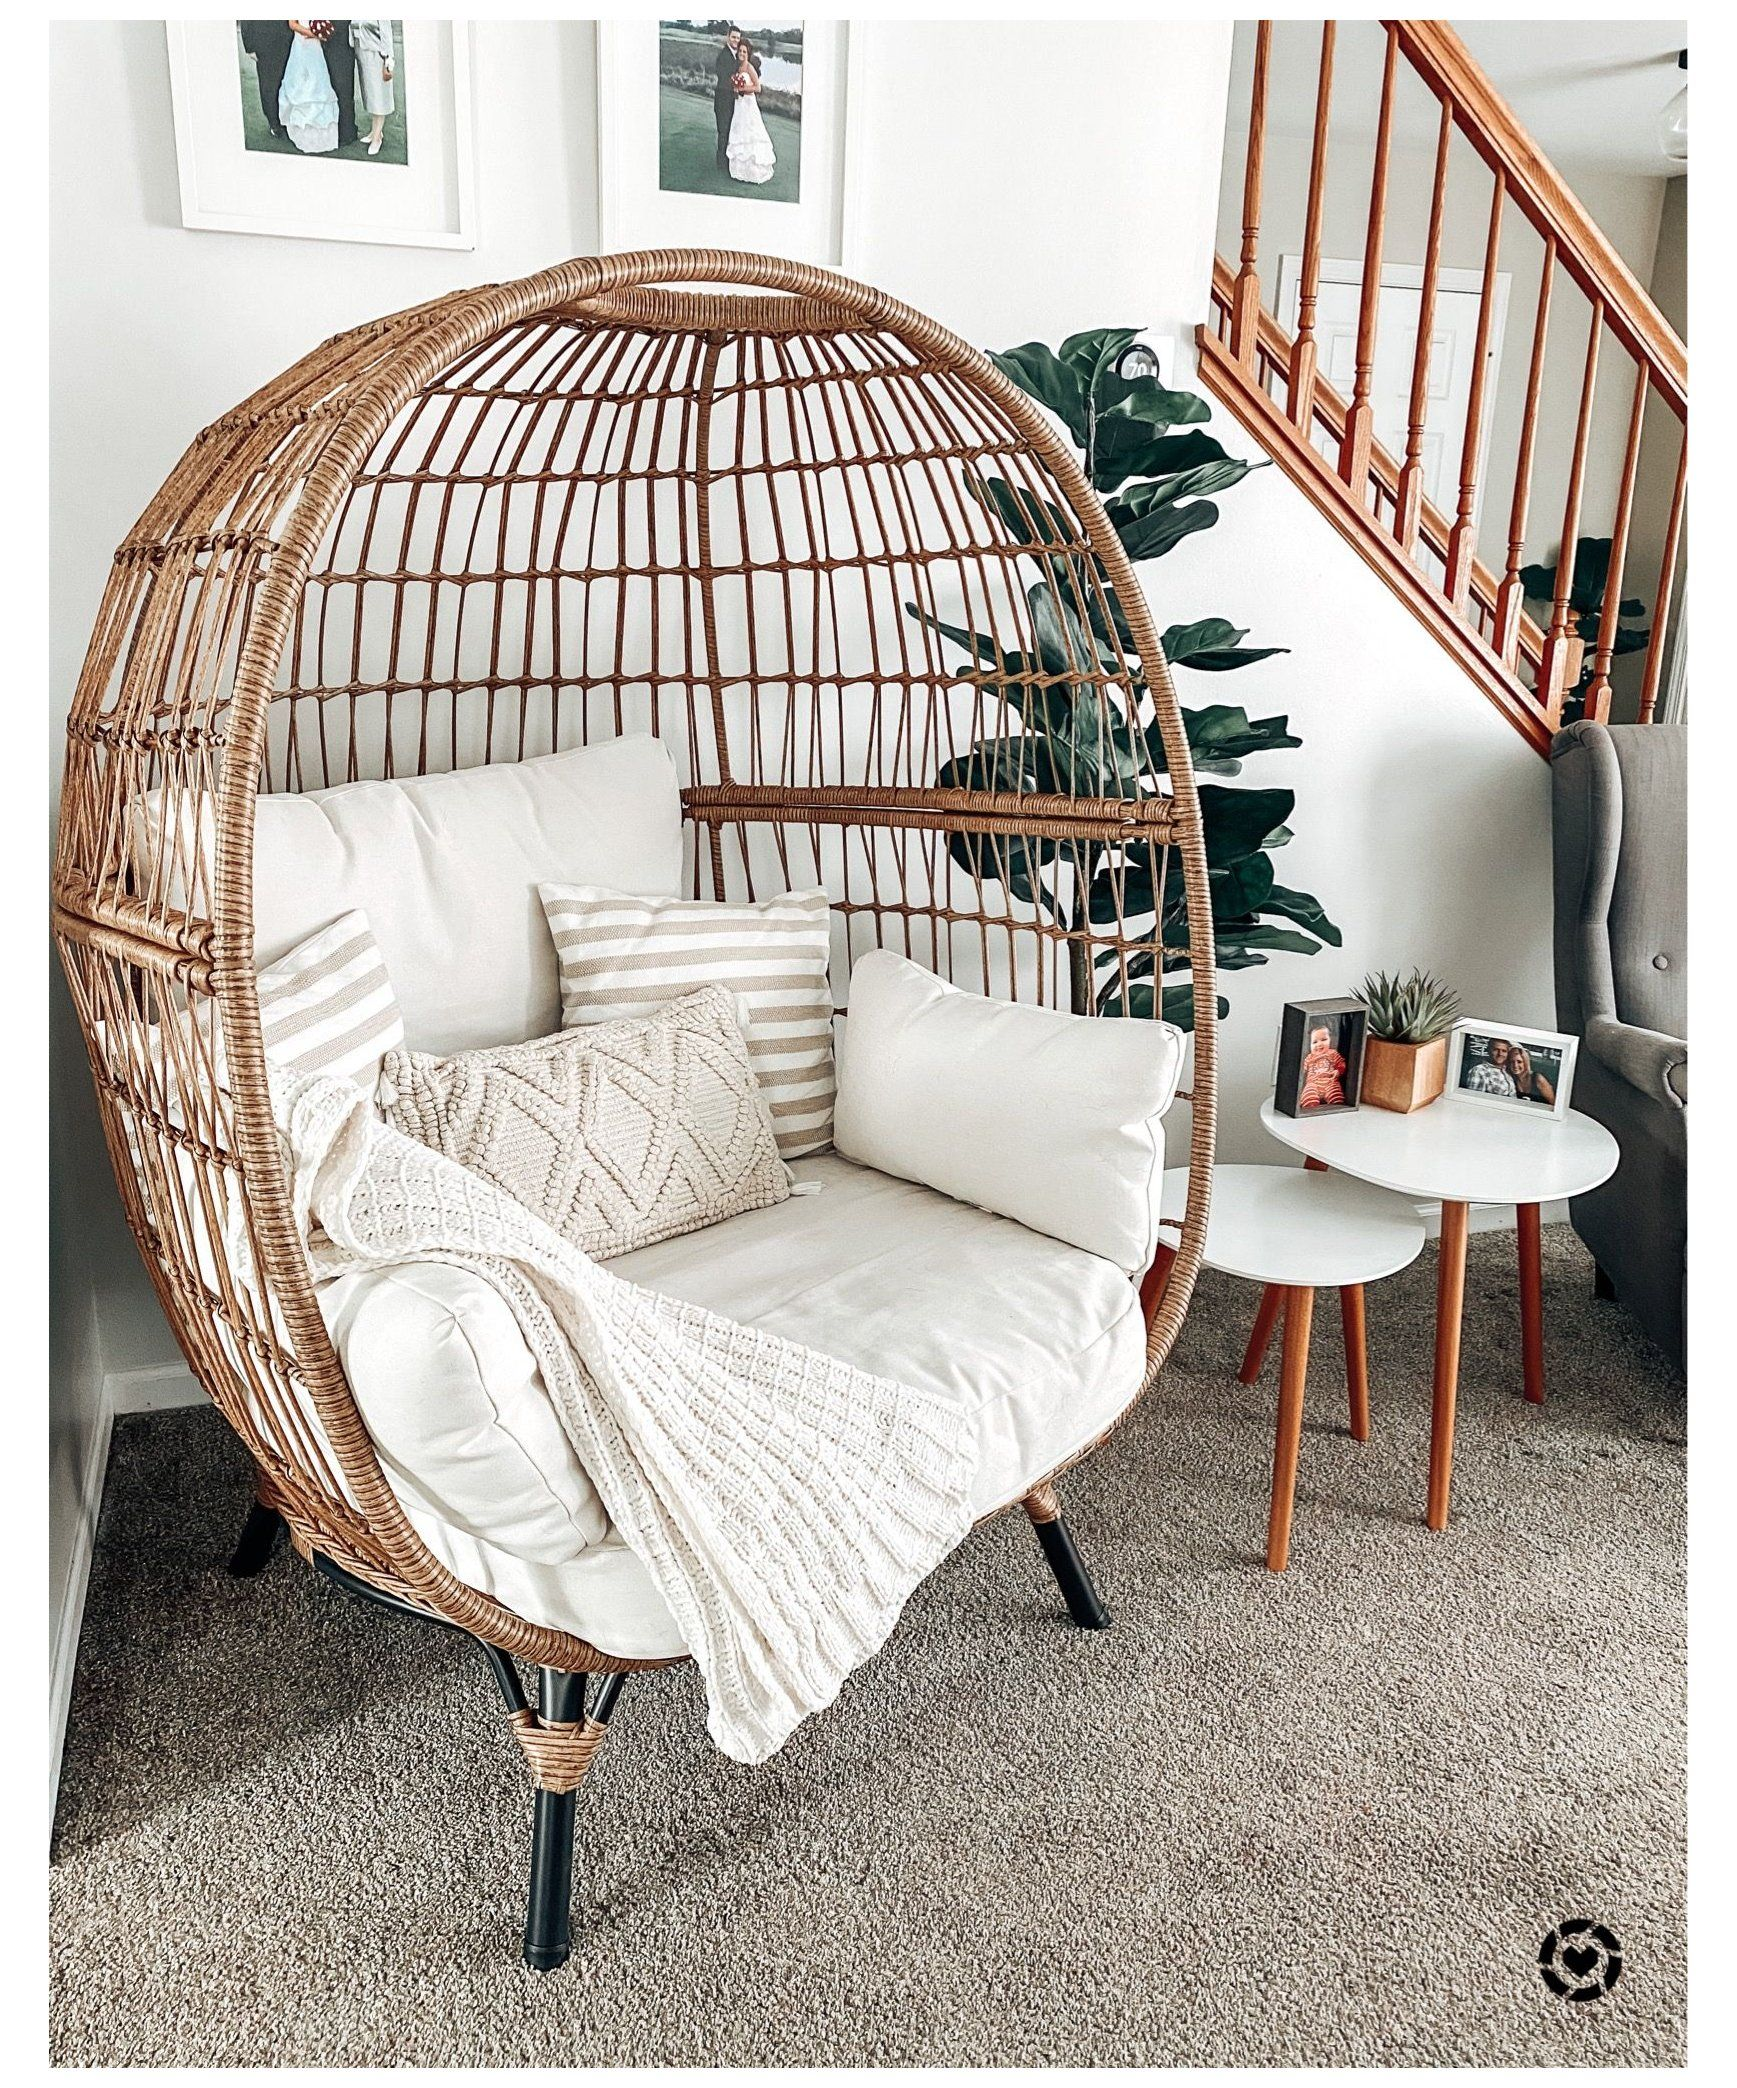 Opal House Egg Chair Indoor Egg Chair Indooreggchair This Egg Chair Is Great For Indoors Too Room Inspiration Bedroom Redecorate Bedroom Cozy Room Decor